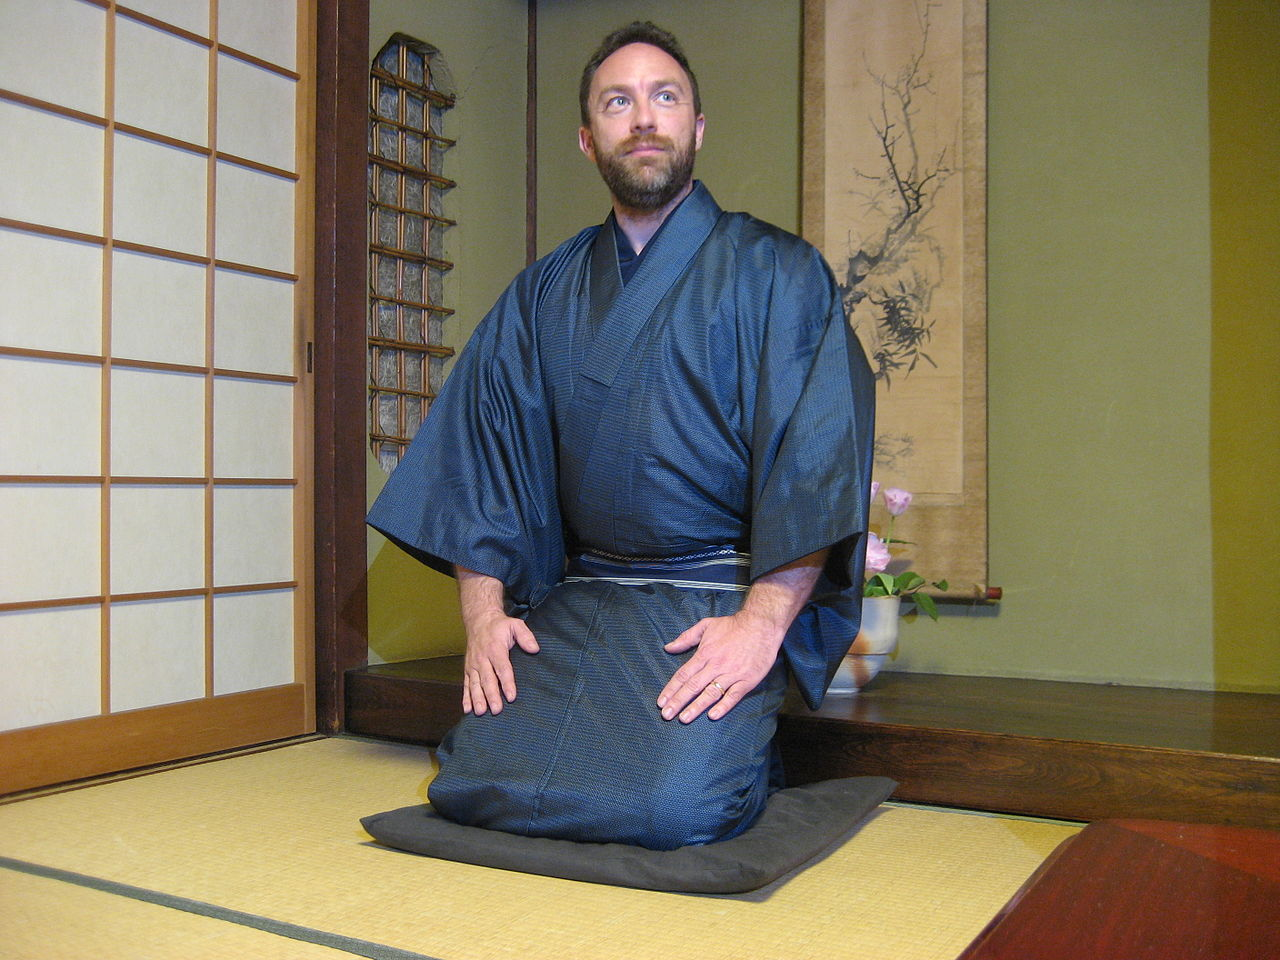 File JimmyWales wearing Kimono.jpg - Wikimedia Commons 6eb3ae8c8